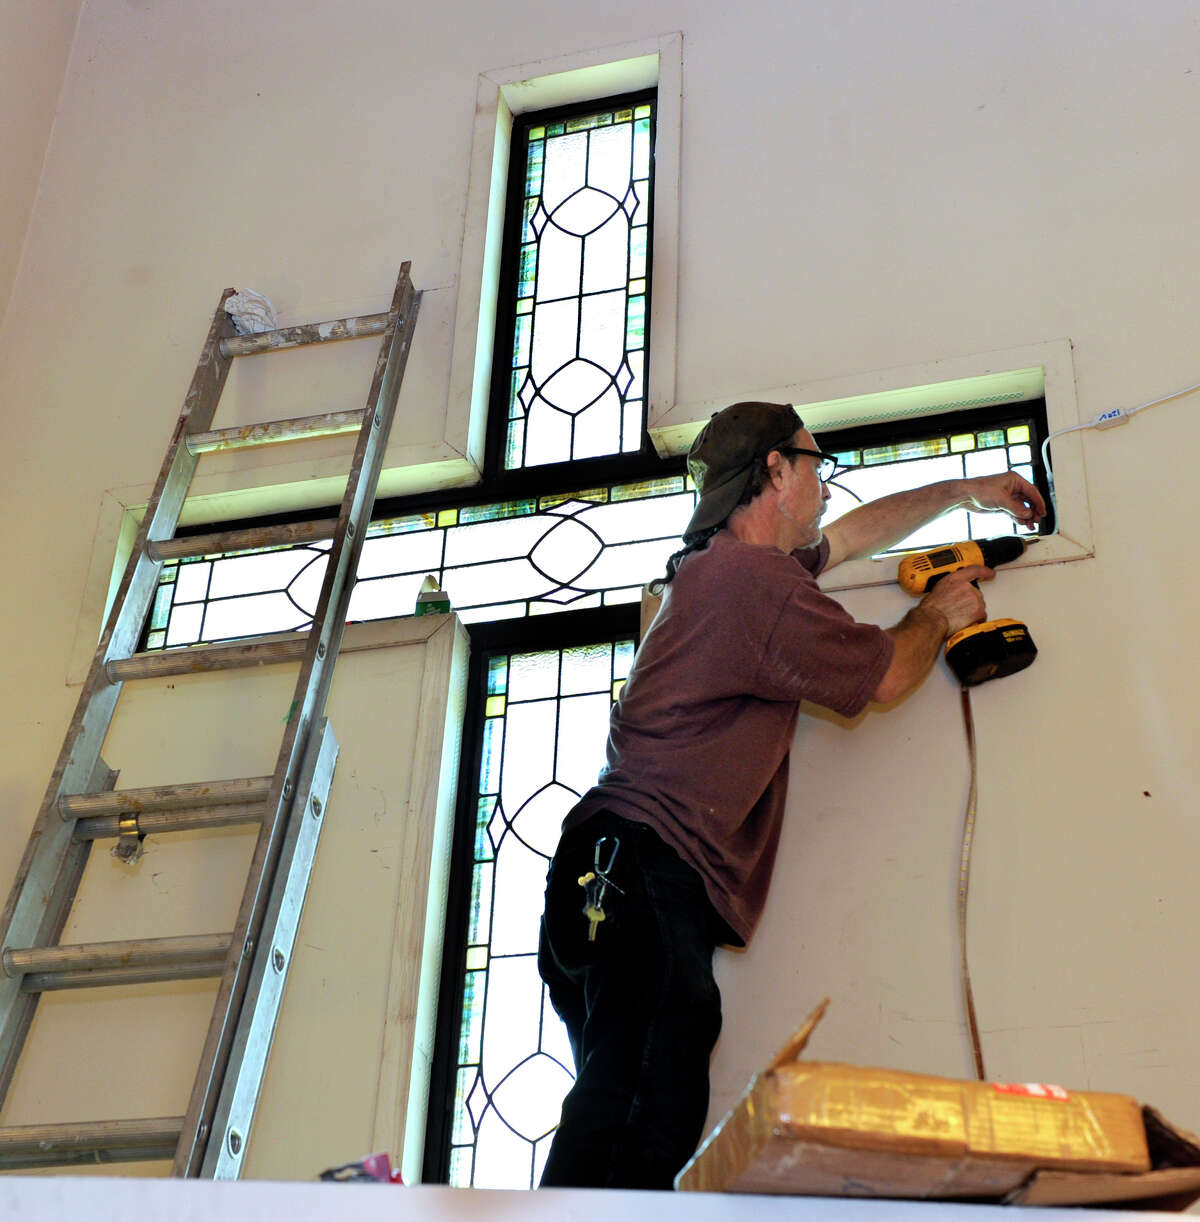 Mark Tomascak, 52, of New Milford, owner of Dragonfly Studios, works on installing a stained glass cross at the New Milford United Methodist Church Wednesday, Sept. 12, 2012.